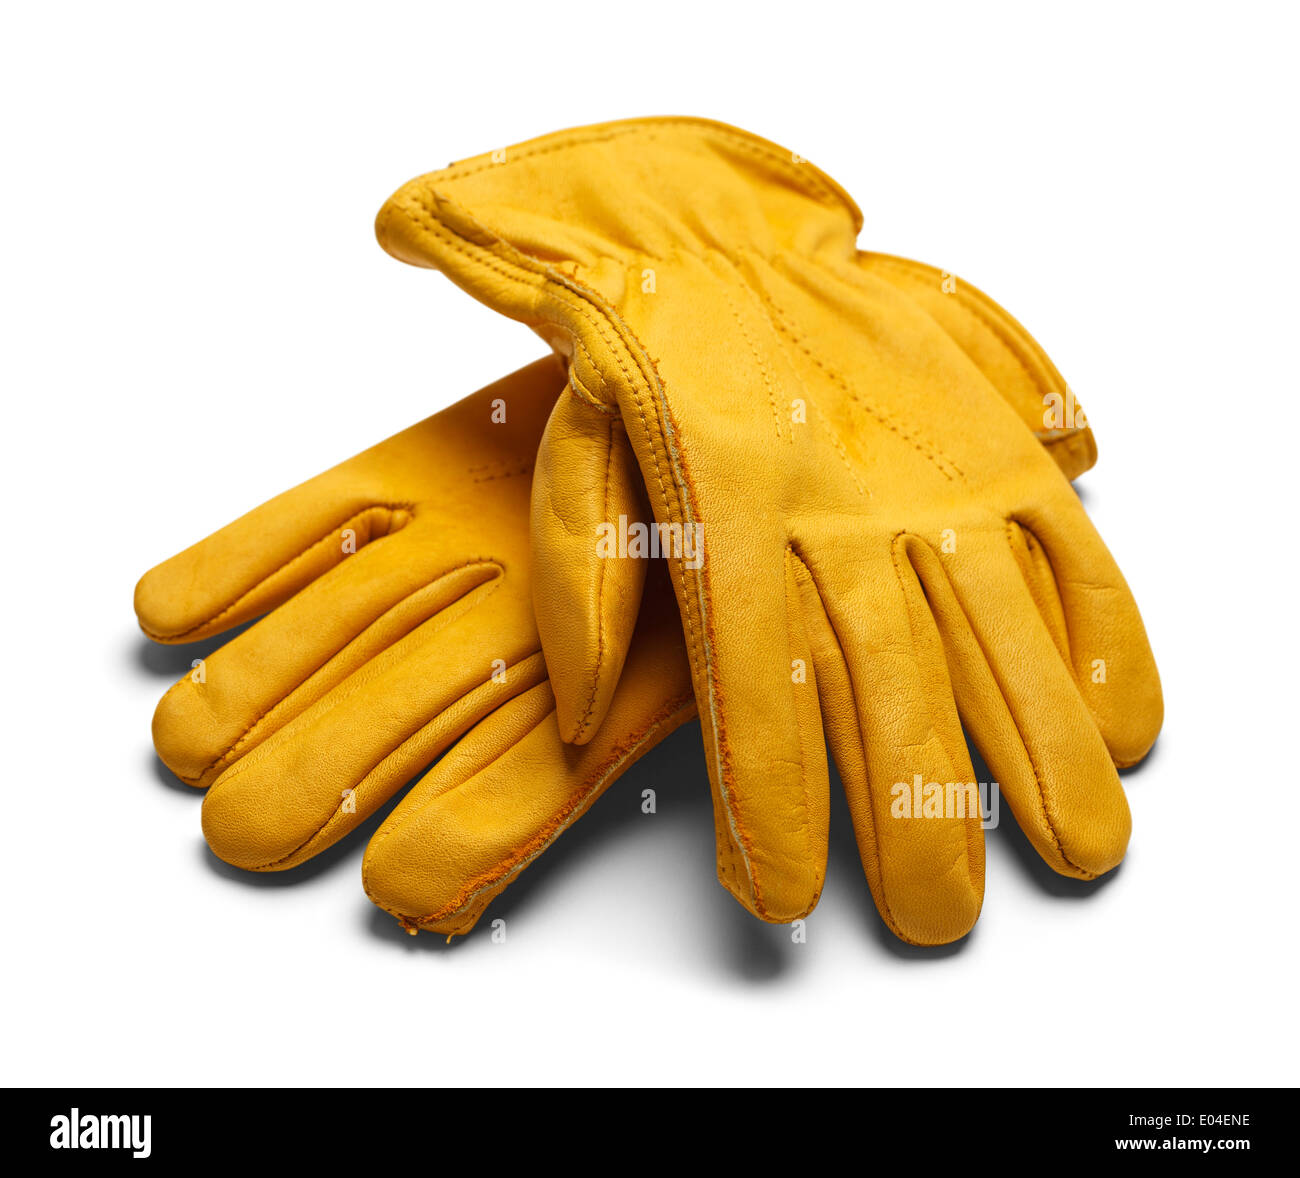 Yellow Construction Work Gloves Isolated on White Background. Stock Photo